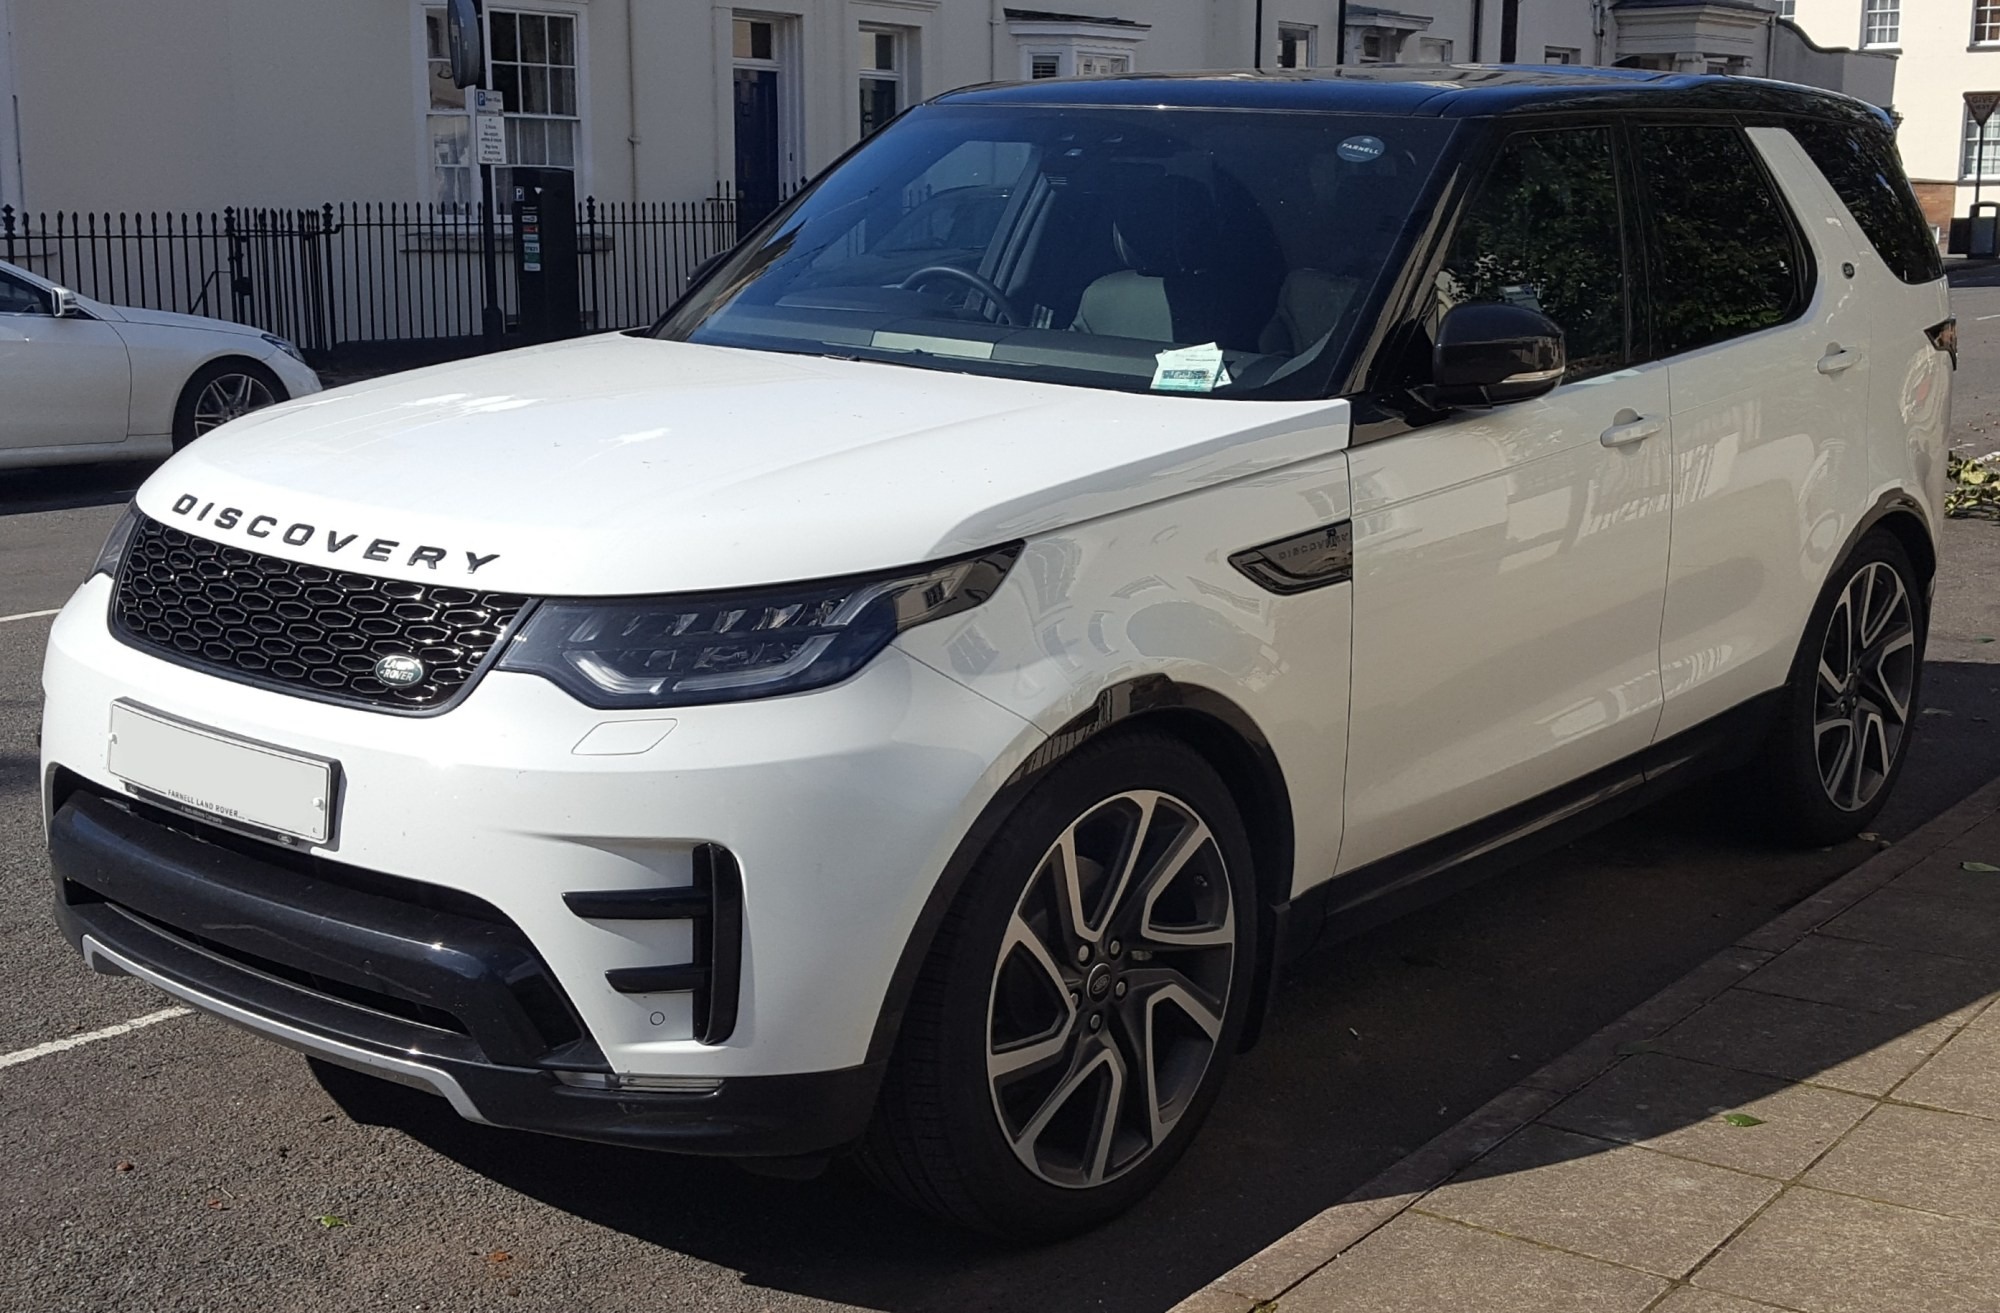 hight resolution of 2017 land rover discovery hse td6 automatic front land rover discovery wikipedia 1997 land rover discovery wiring diagram at highcare